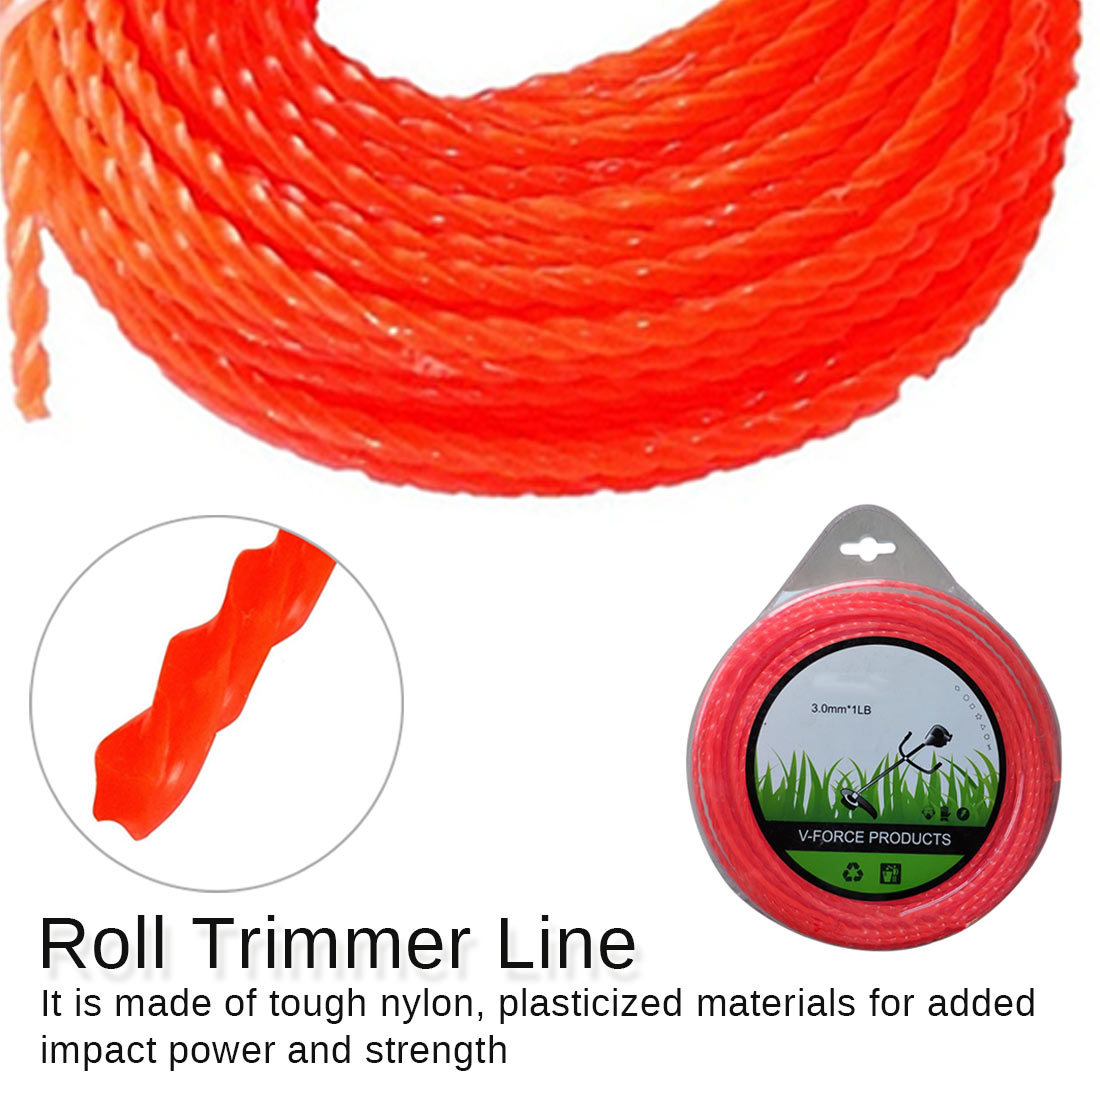 Threaded Nylon Strimmer Line 3mm Diameter Cord Grass Trimmer Line Grass Cutting Weed Cutter Trimmer Replacement Part